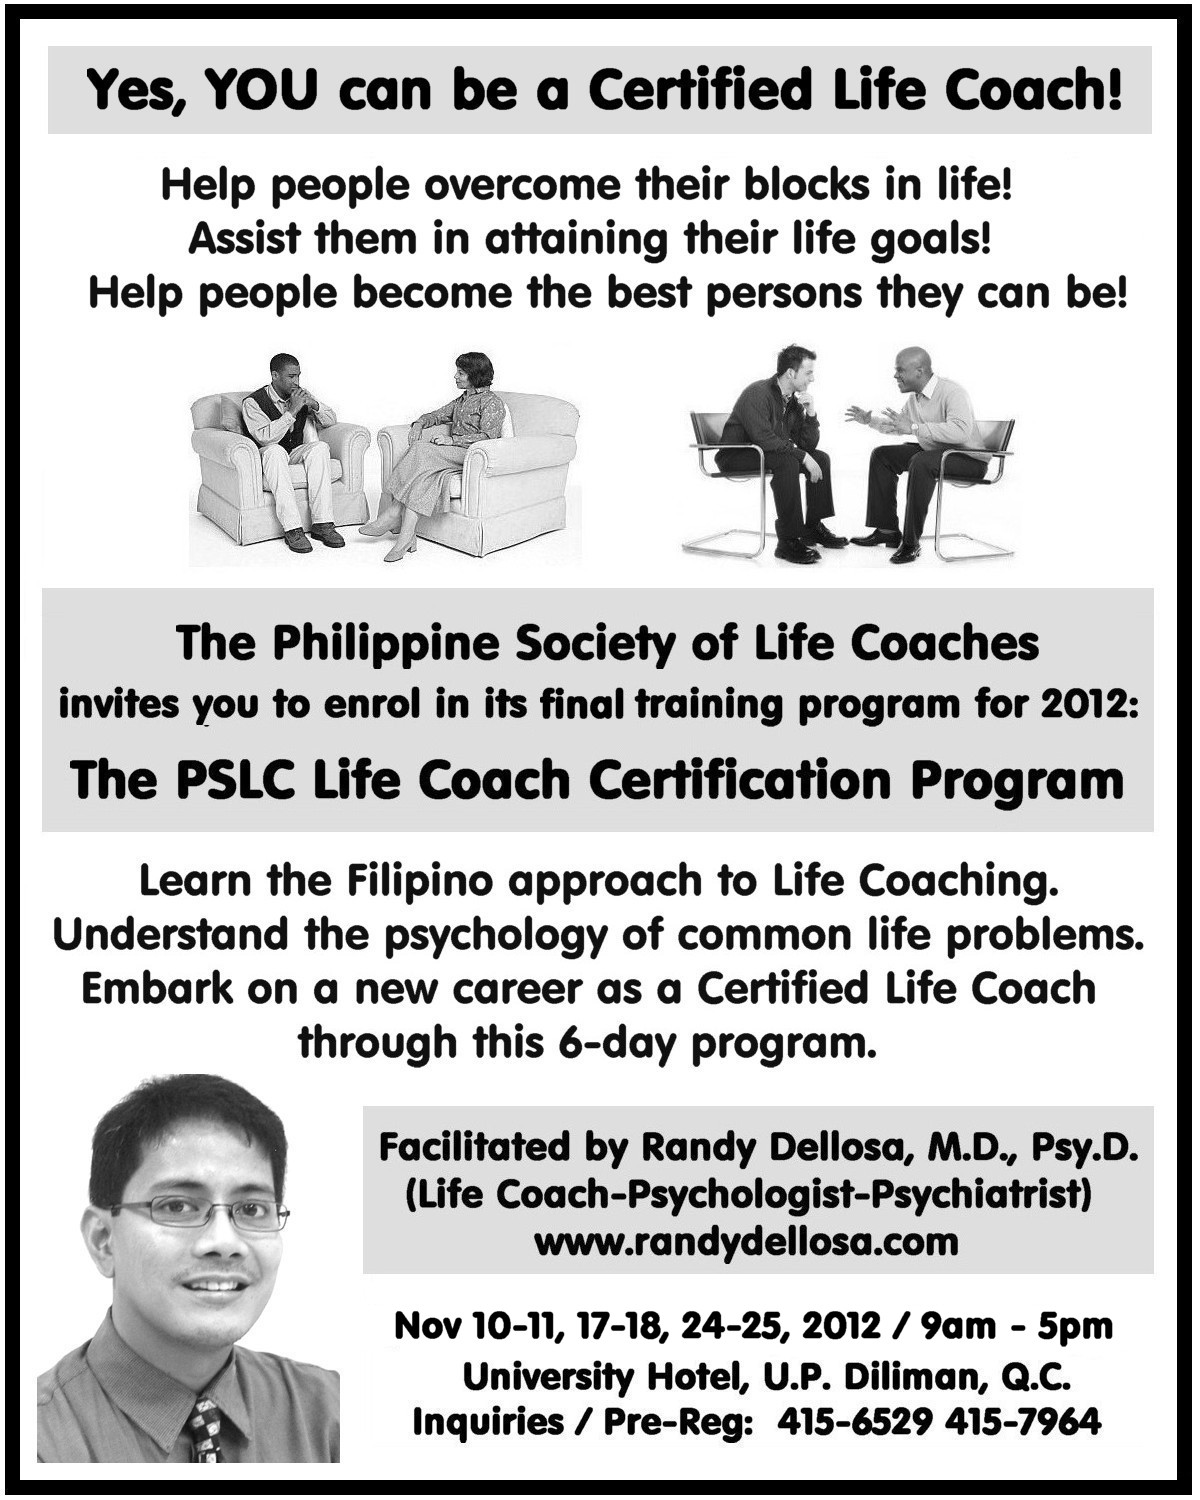 Randy dellosa the prestigious batch of new life coaches for the prestigious batch of new life coaches for 2012 life coach counselor psychotherapist clinical psychologist psychiatrist osteopath quezon city 1betcityfo Image collections